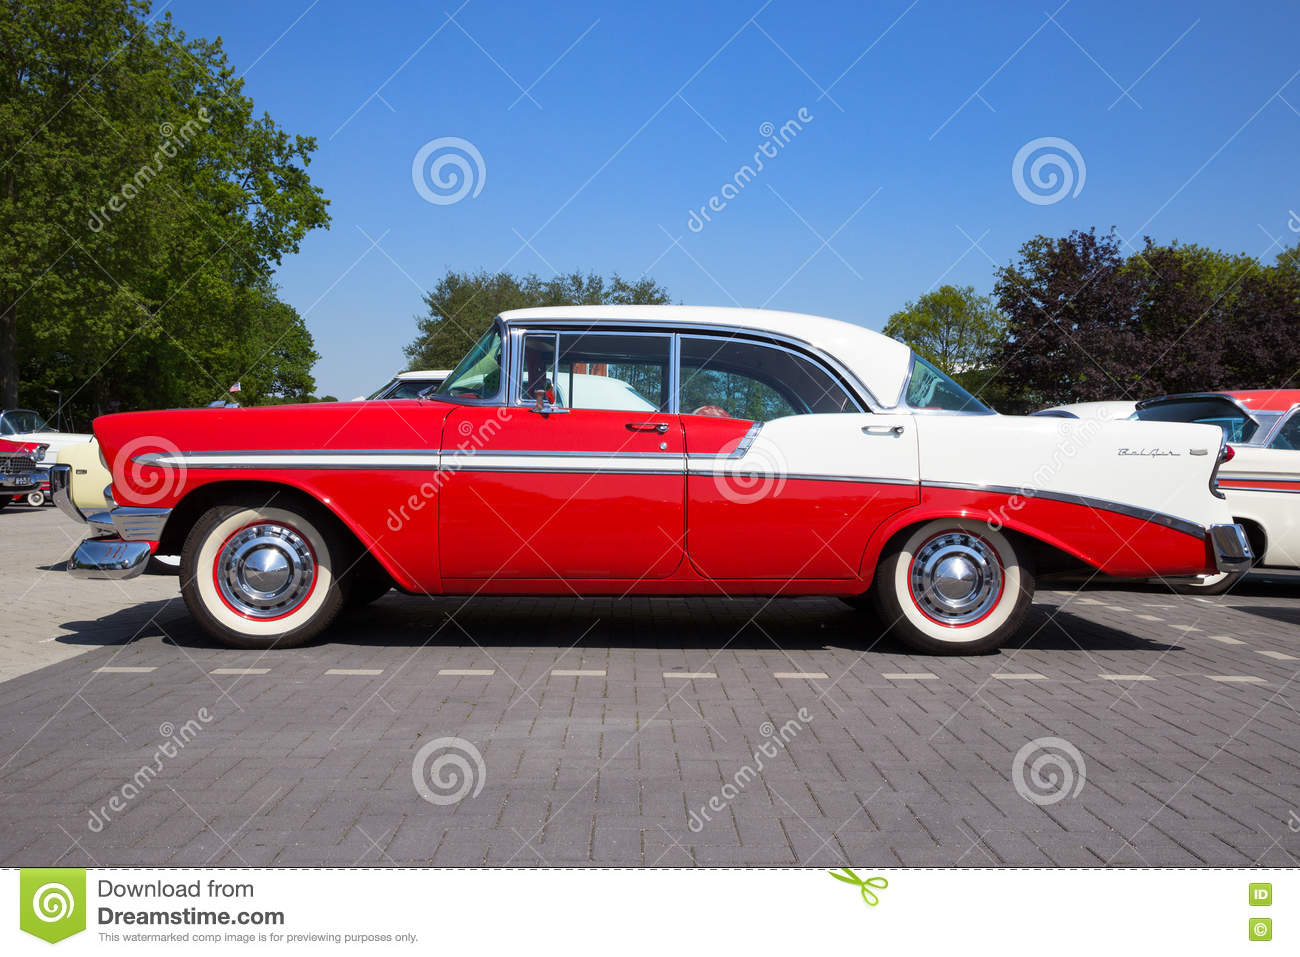 Hard-top 1956 de porte de Chevrolet Belair 4